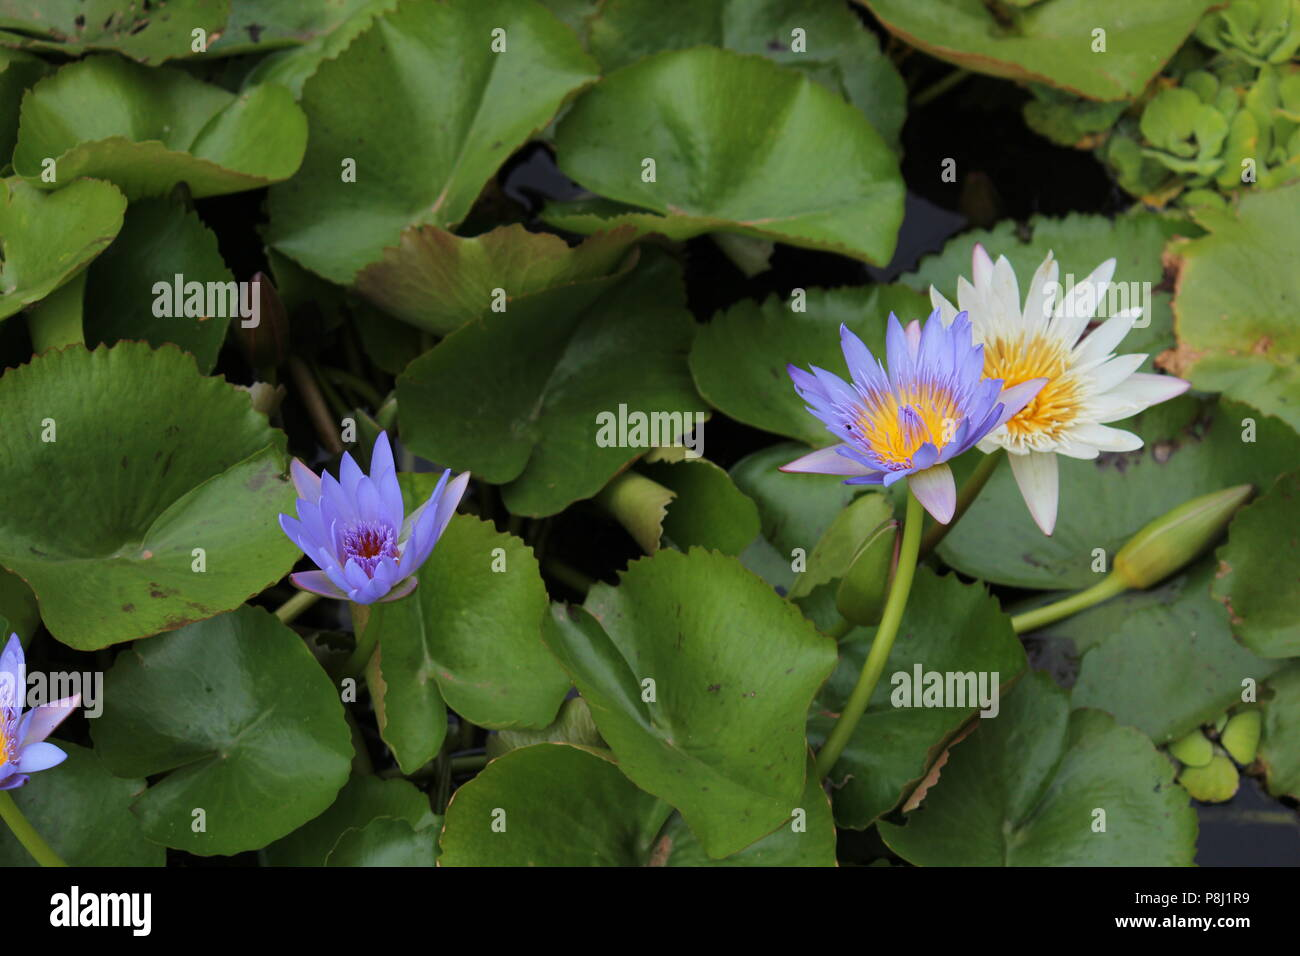 Indian lotus root stock photos indian lotus root stock images alamy lotus in small pond with lilies surrounding it stock image mightylinksfo